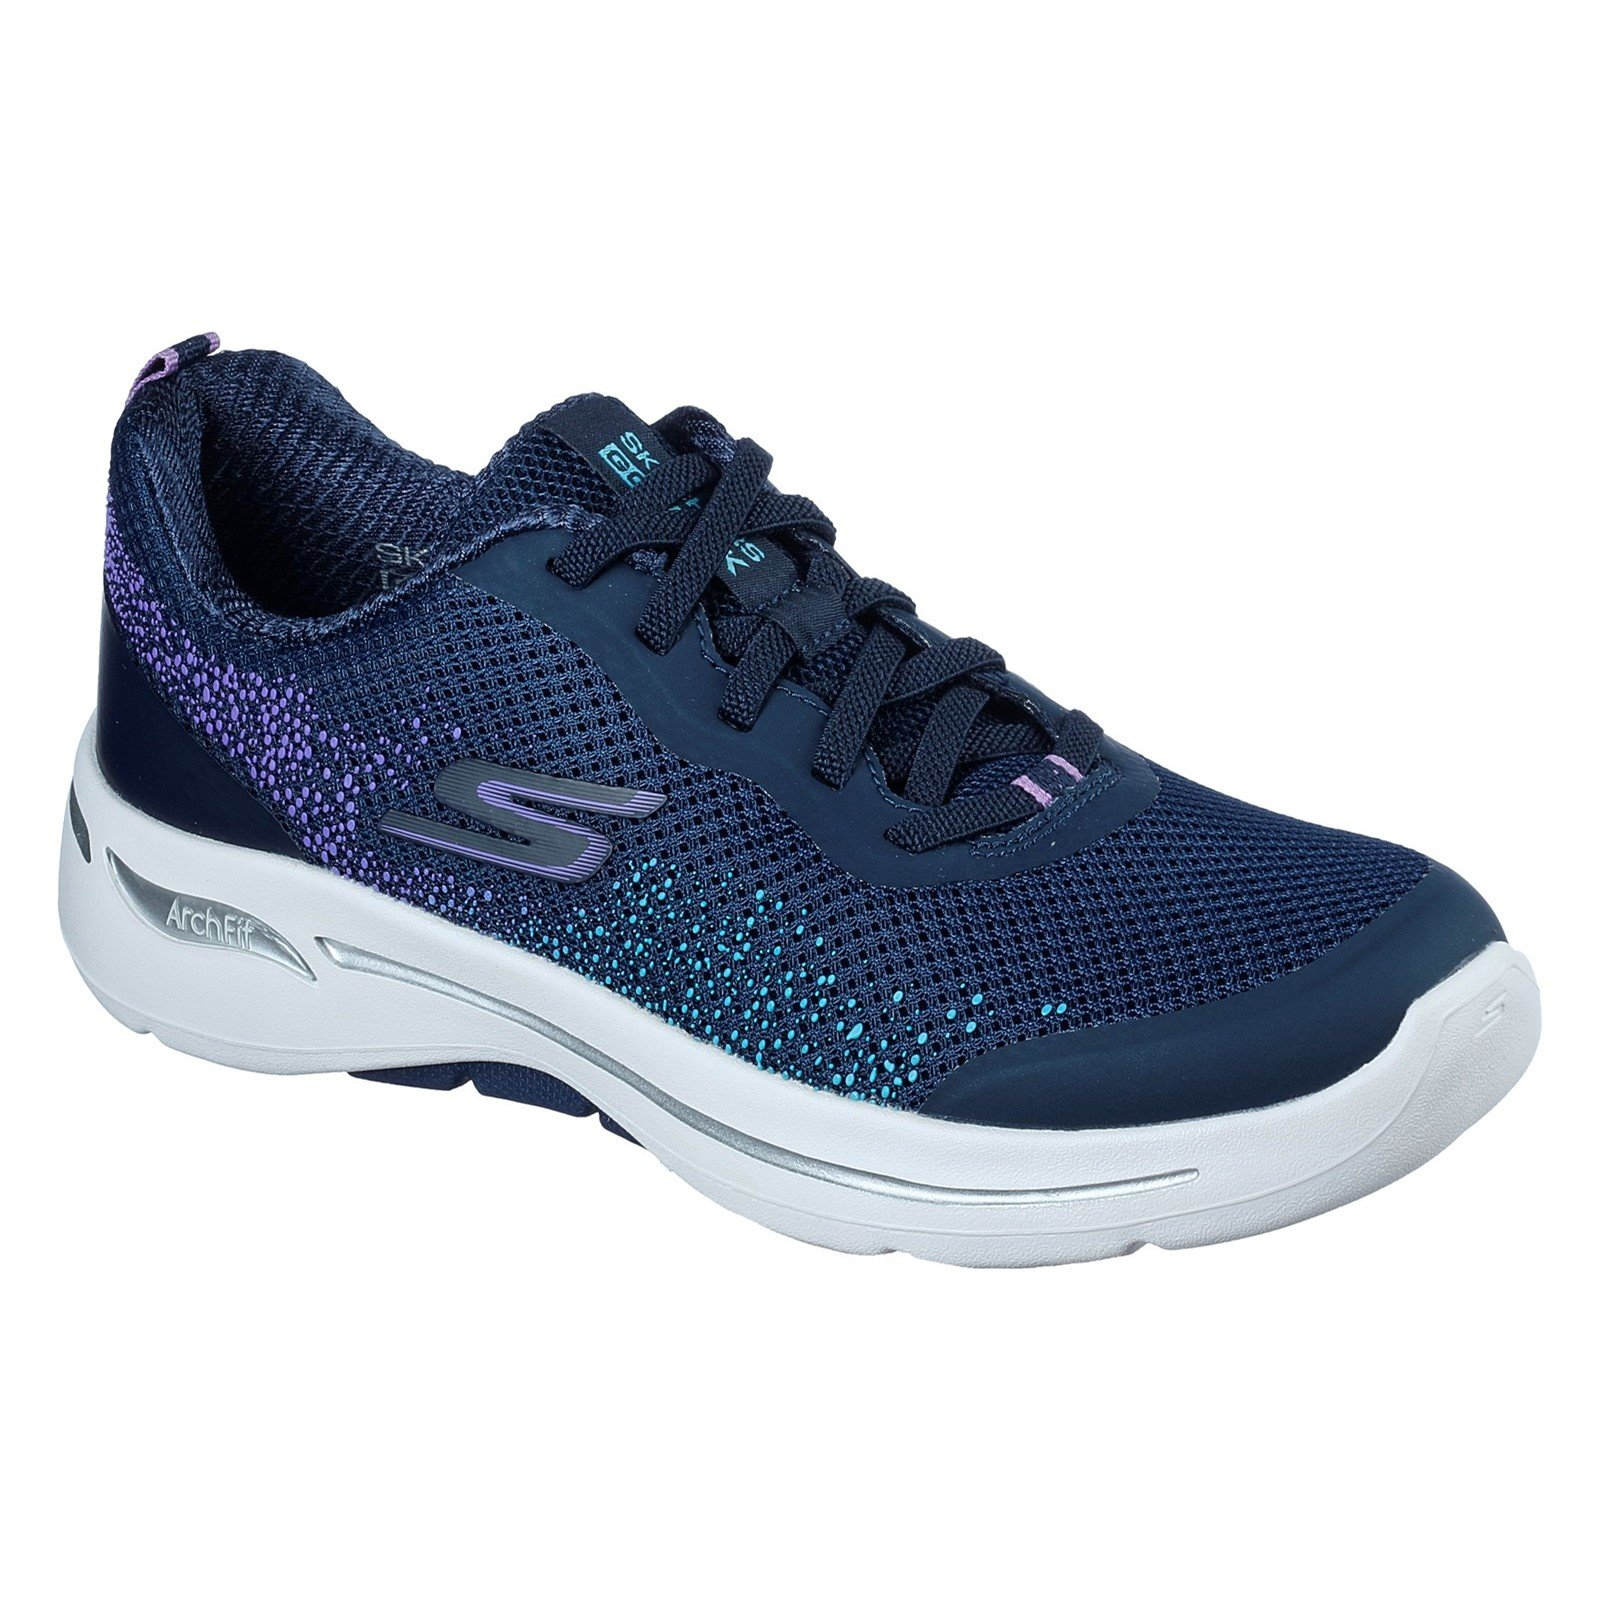 Skechers Women's Go Walk Arch Fit Flying Stars Trainer Various Colours 32841 - Navy/Lavender 7